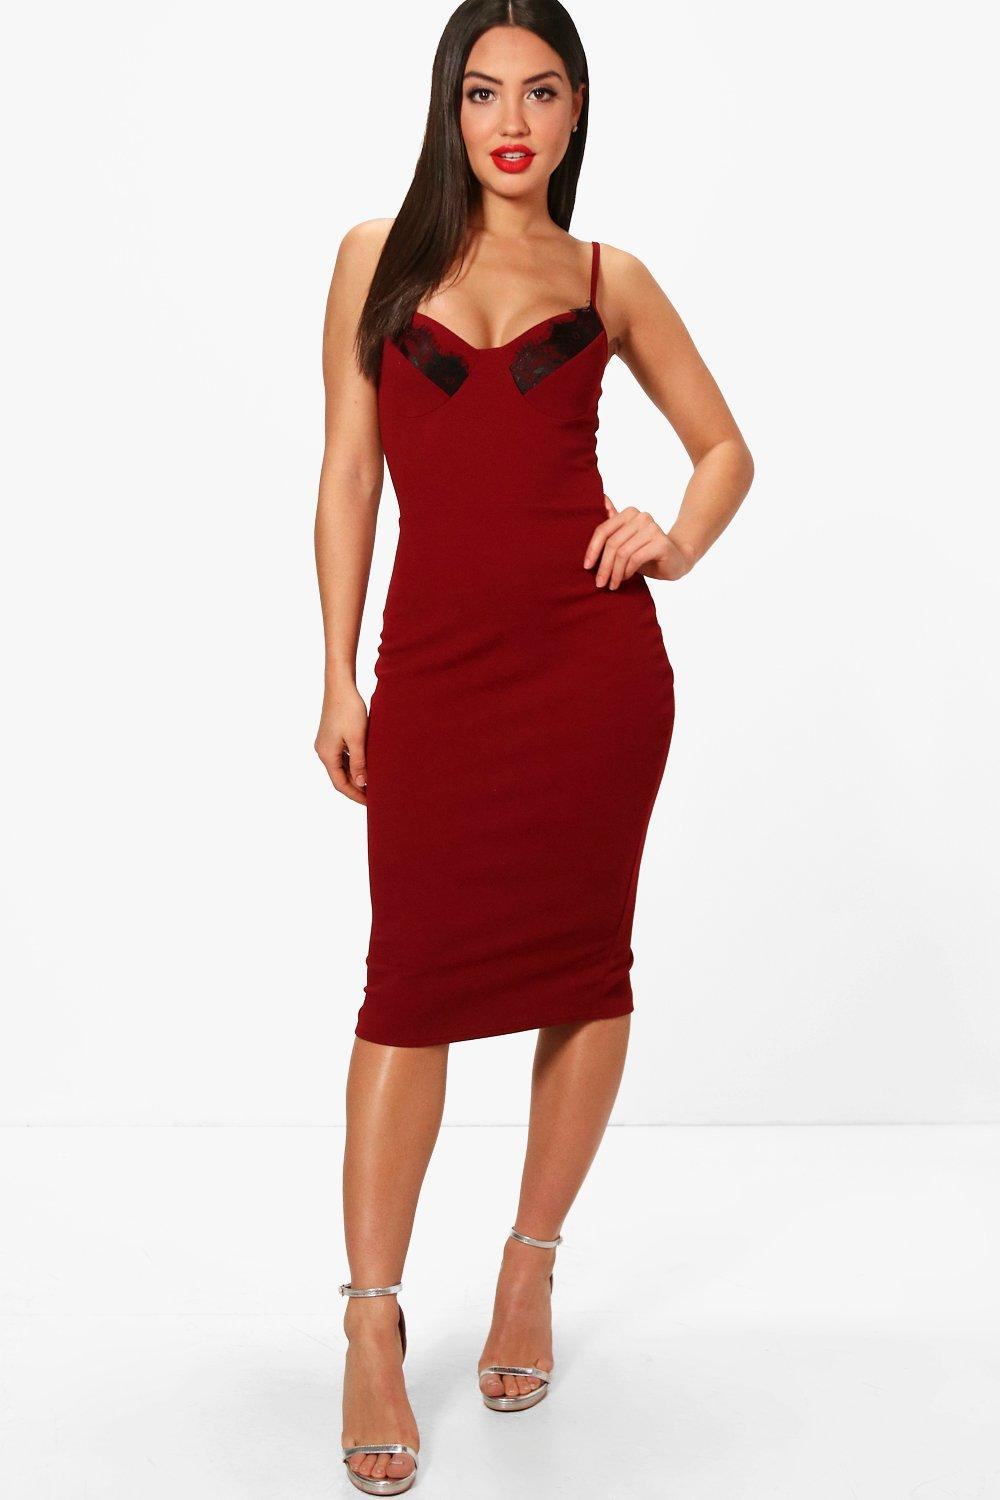 c72174d854f Womens Berry Lace Cup Detail Strappy Midi Dress. Hover to zoom